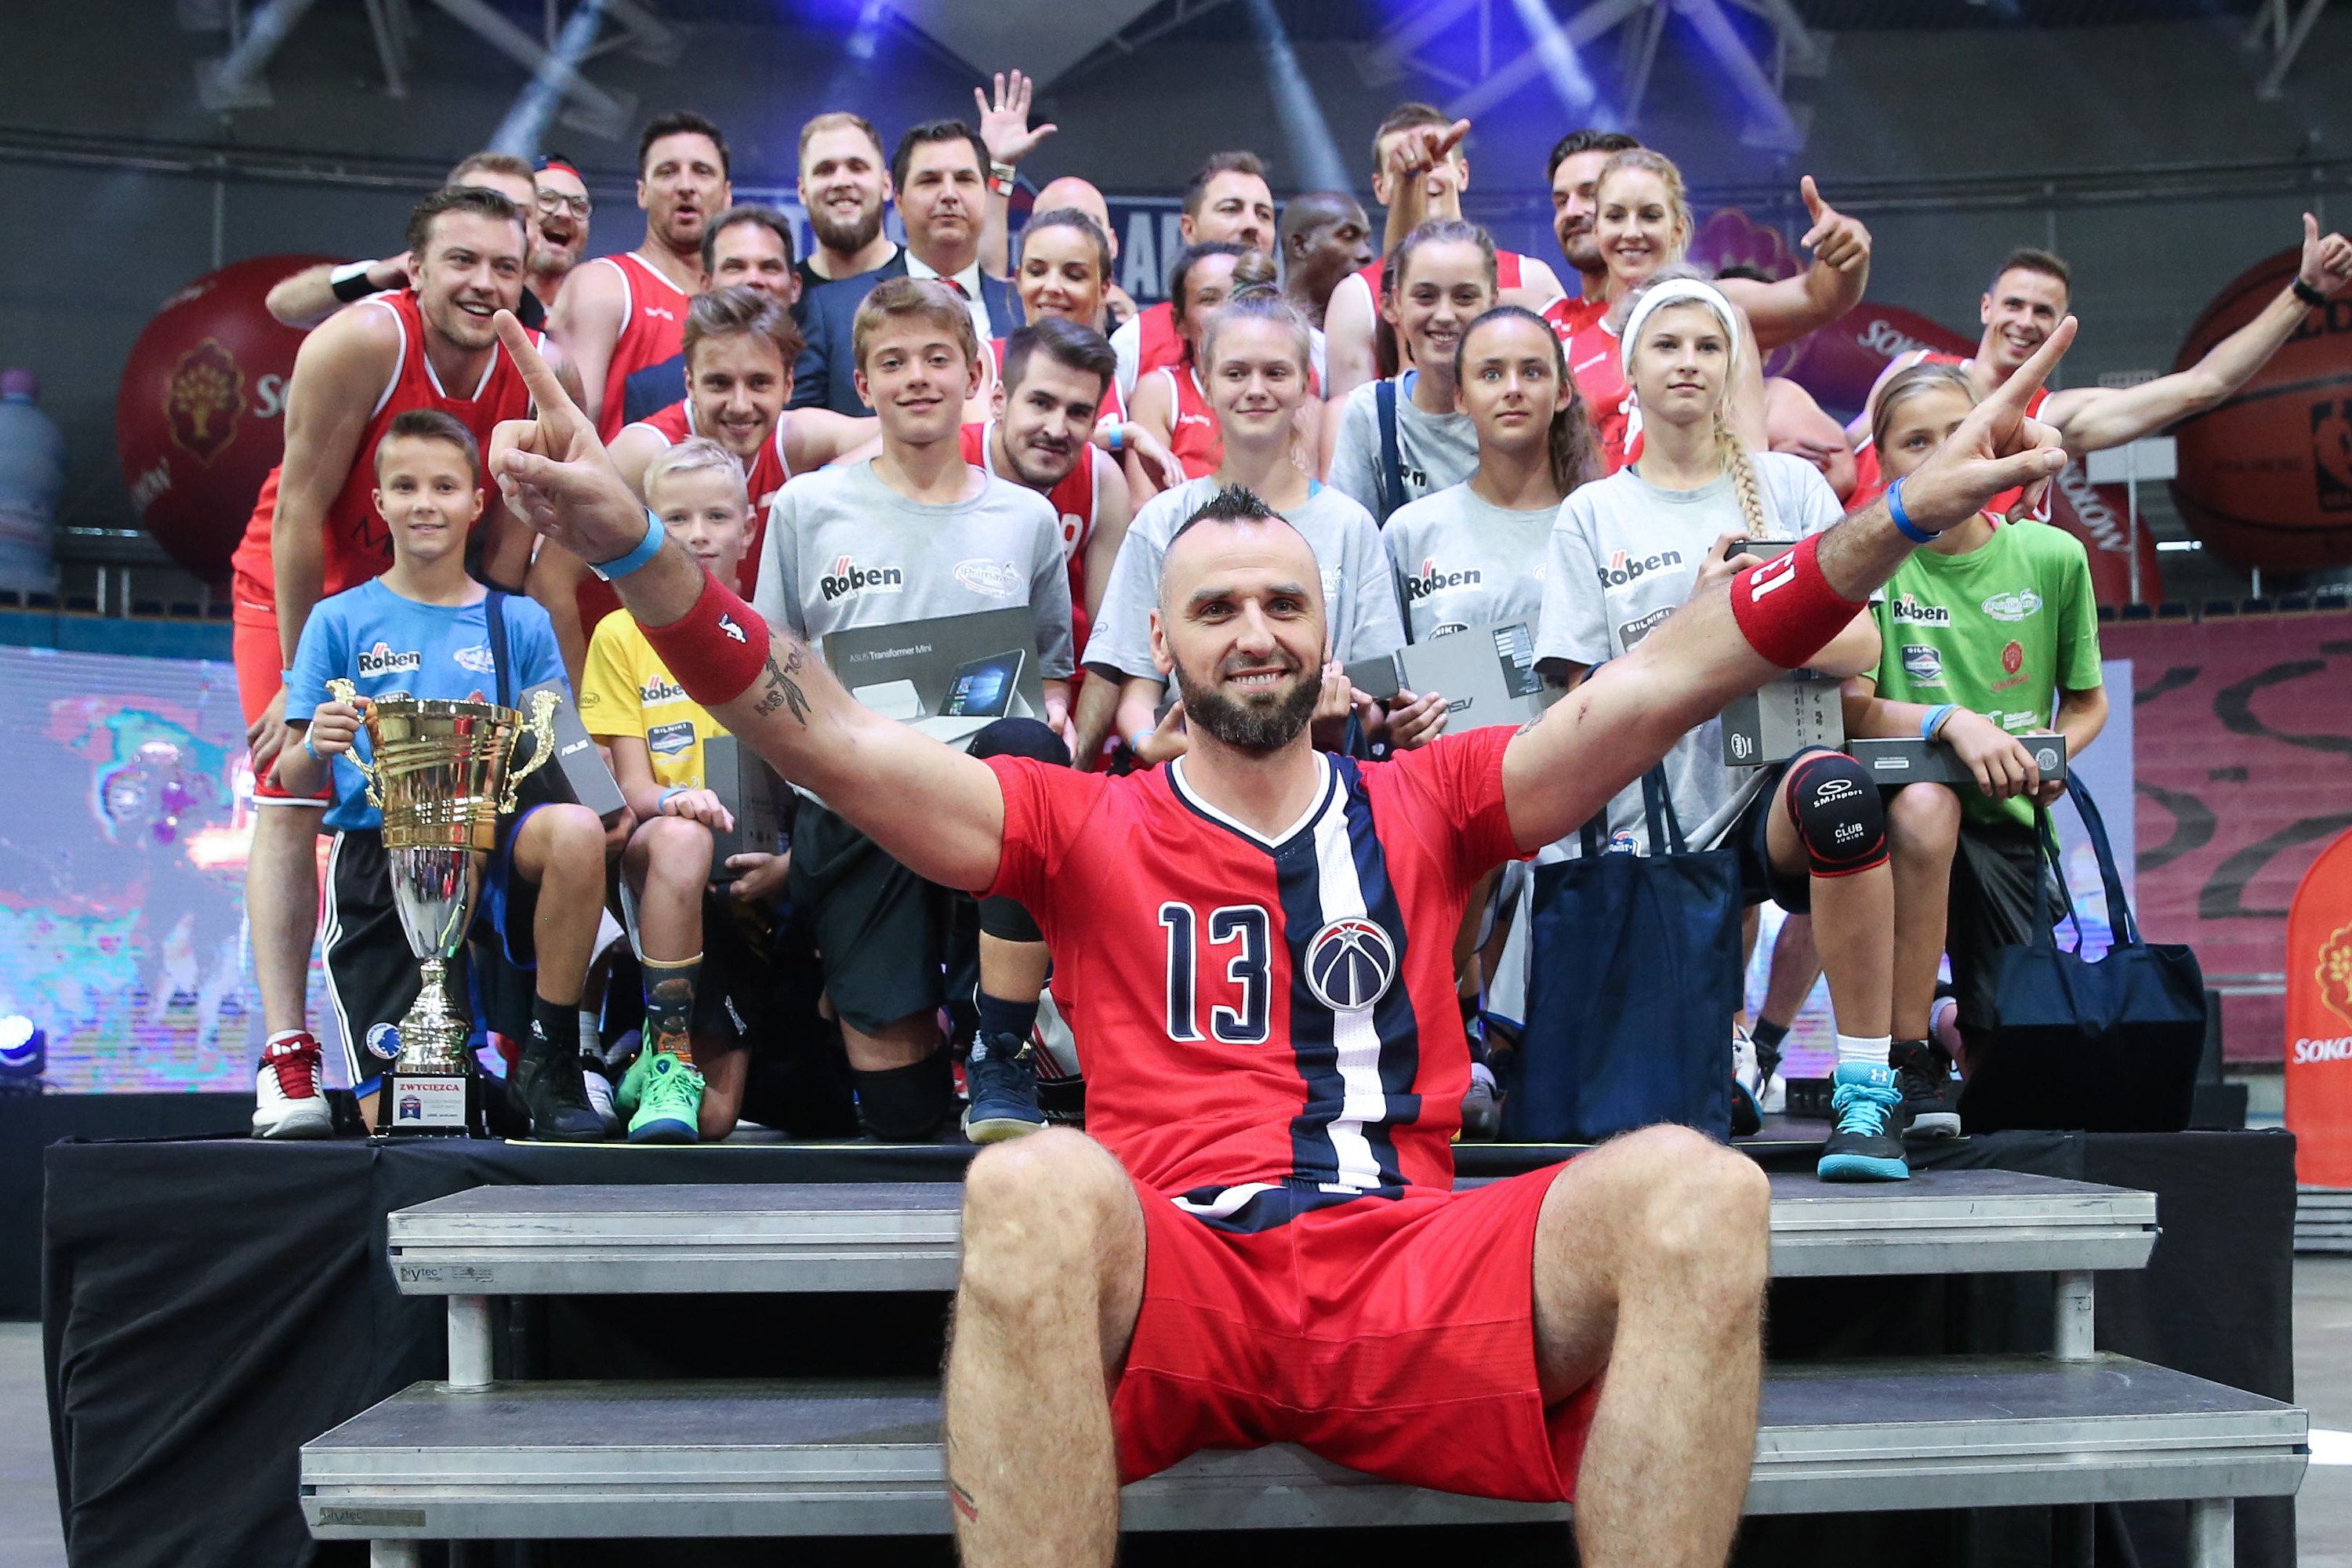 LODZ 30.07.2017 MARCIN GORTAT CAMP MECZ KOSZYKOWKA: GORTAT TEAM - WOJSKO POLSKIE --- MG13 CAMP BASKETBALL MATCH: GORTAT TEAM - POLISH ARMY marcin gortat finalist skills challenge FOT. PIOTR KUCZA/ 400mm.pl